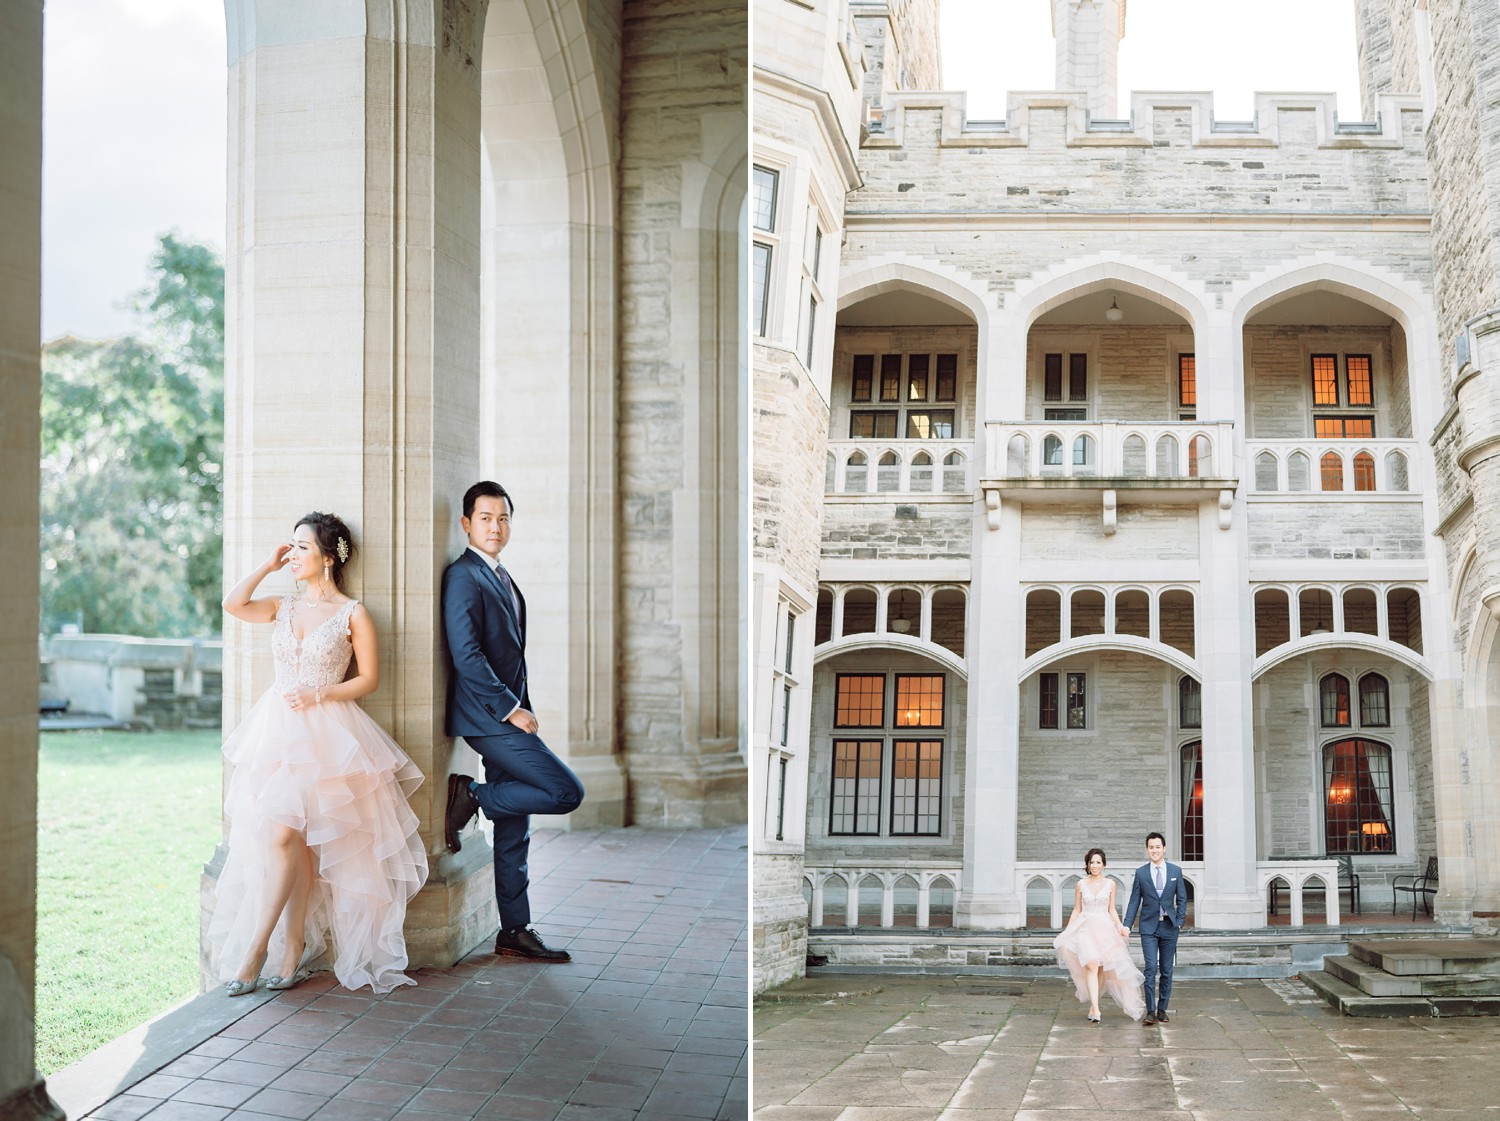 Hong Kong Bride and Groom at Castle Casa Loma Wedding Toronto Wedding Photographer